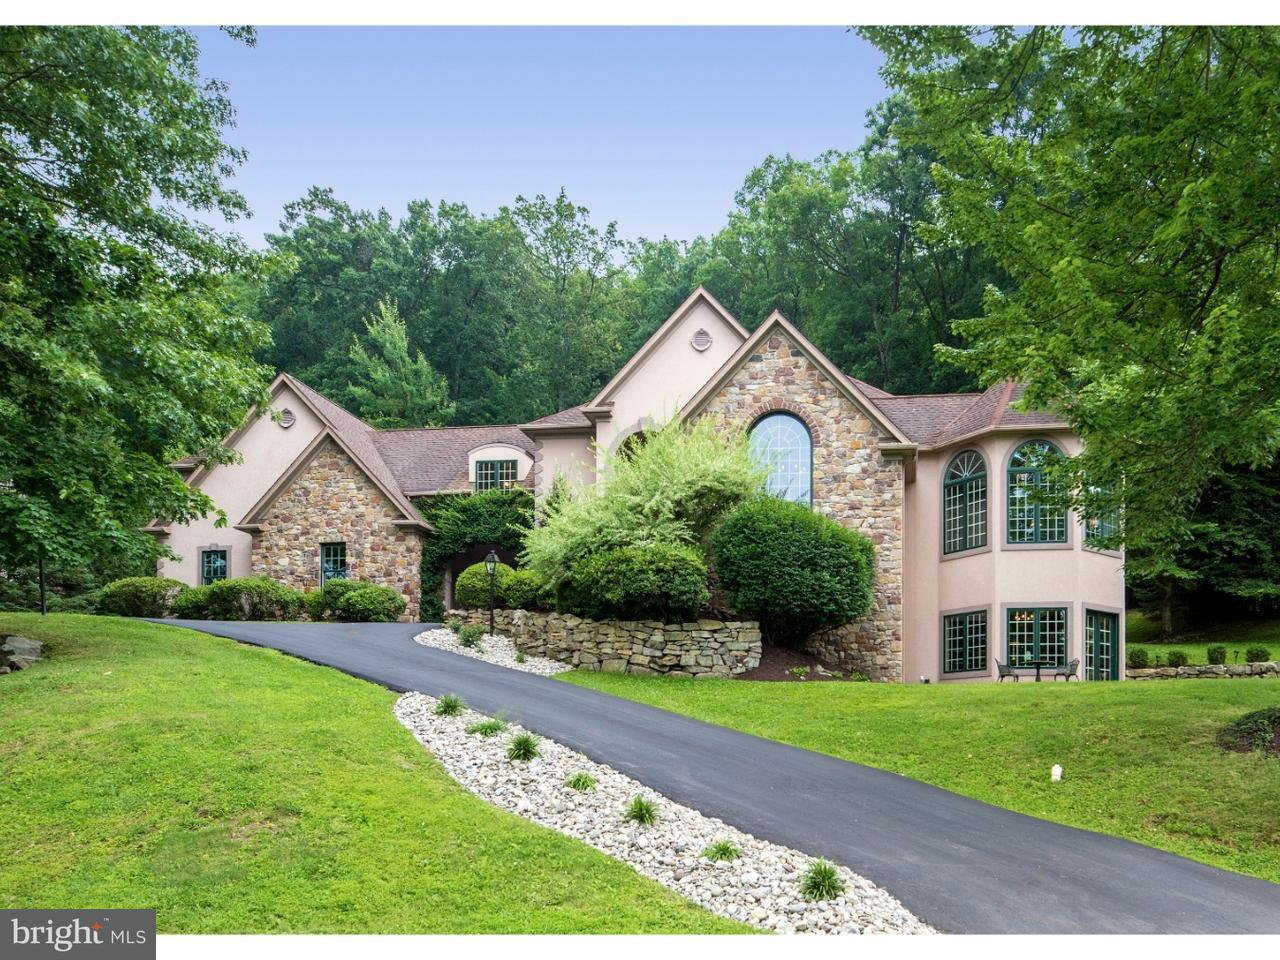 Single Family Home for Sale at 1870 AUGUSTA Drive Center Valley, Pennsylvania 18034 United States